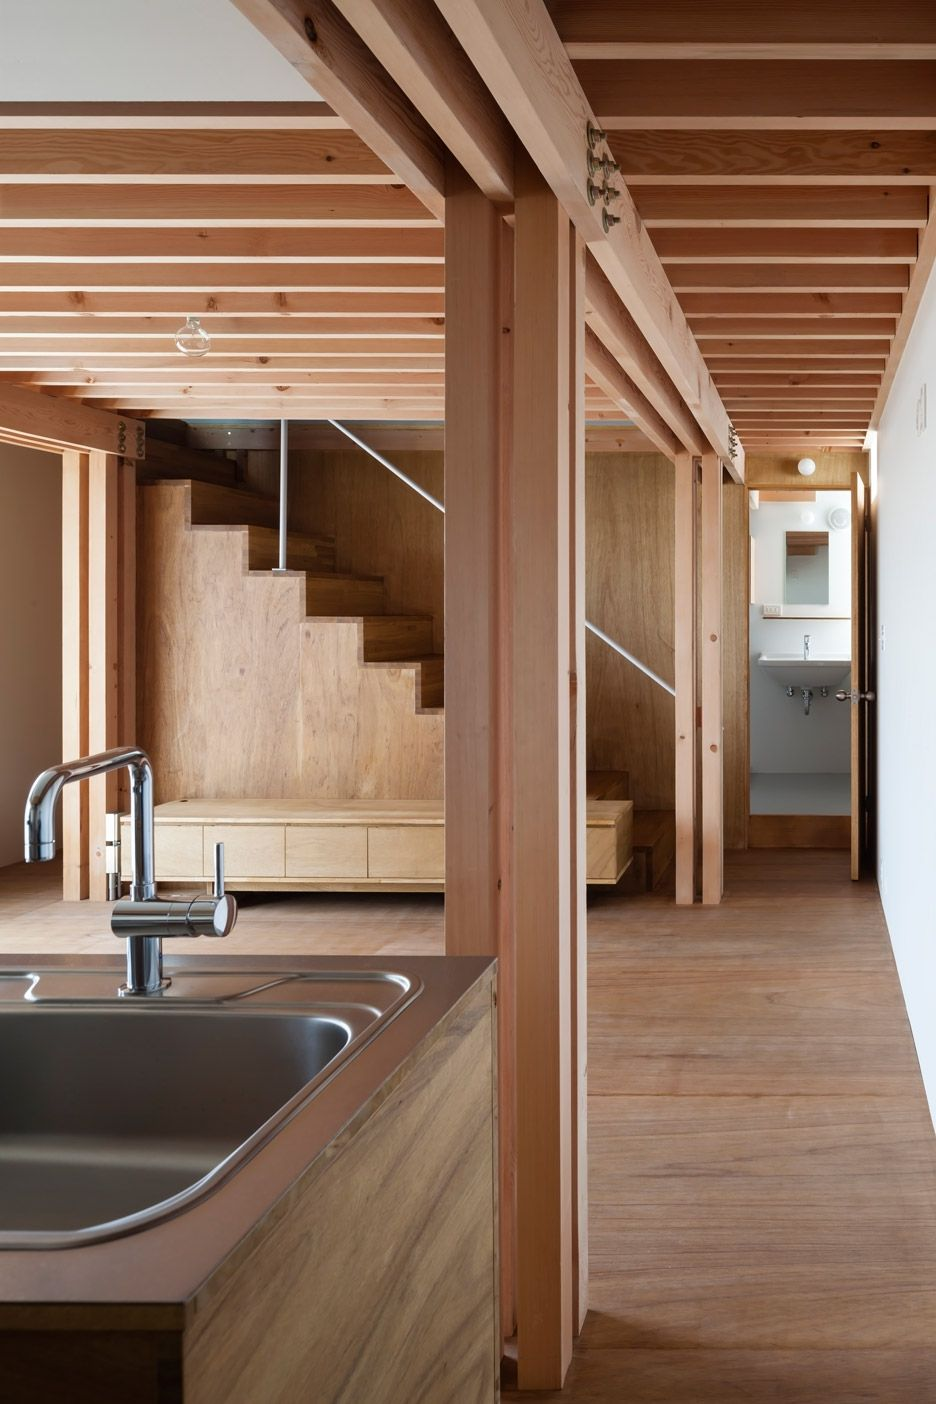 This japanese house features four wooden columns arranged in a square to support the rest of